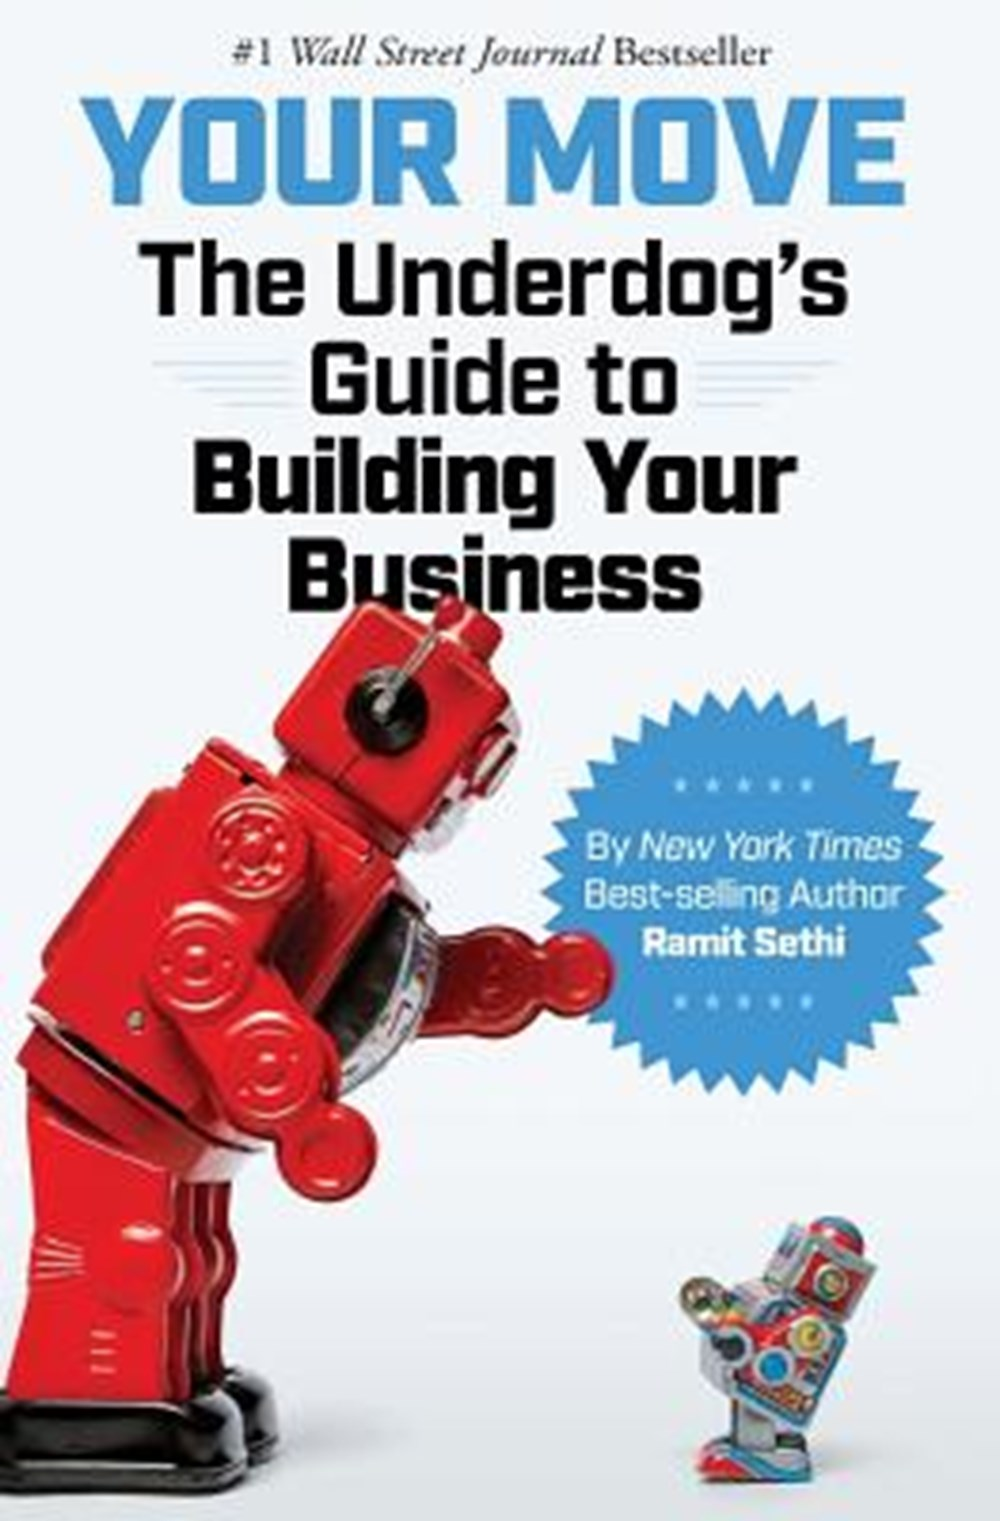 Your Move The Underdog's Guide to Building Your Business